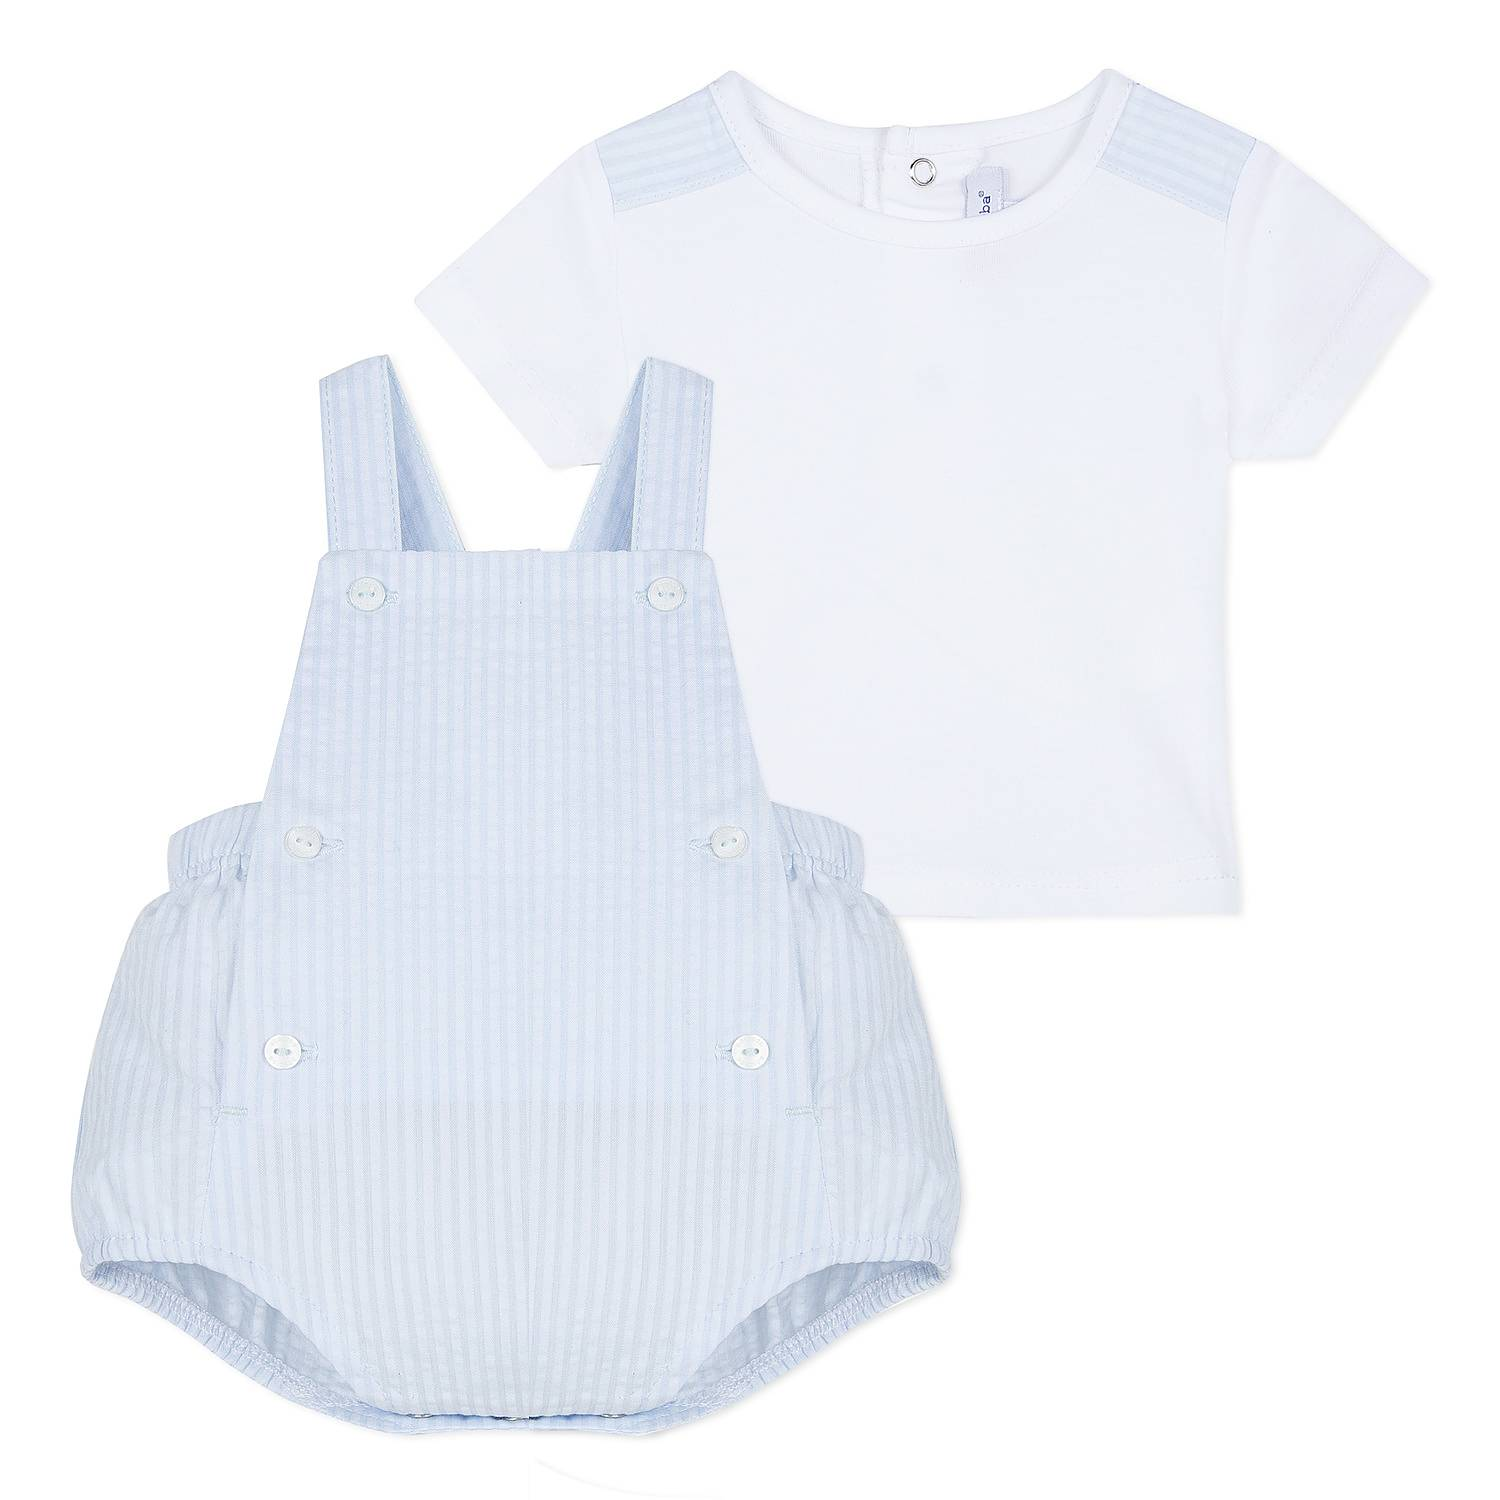 49e6c0036 Dungaree & T-Shirt Set Baby